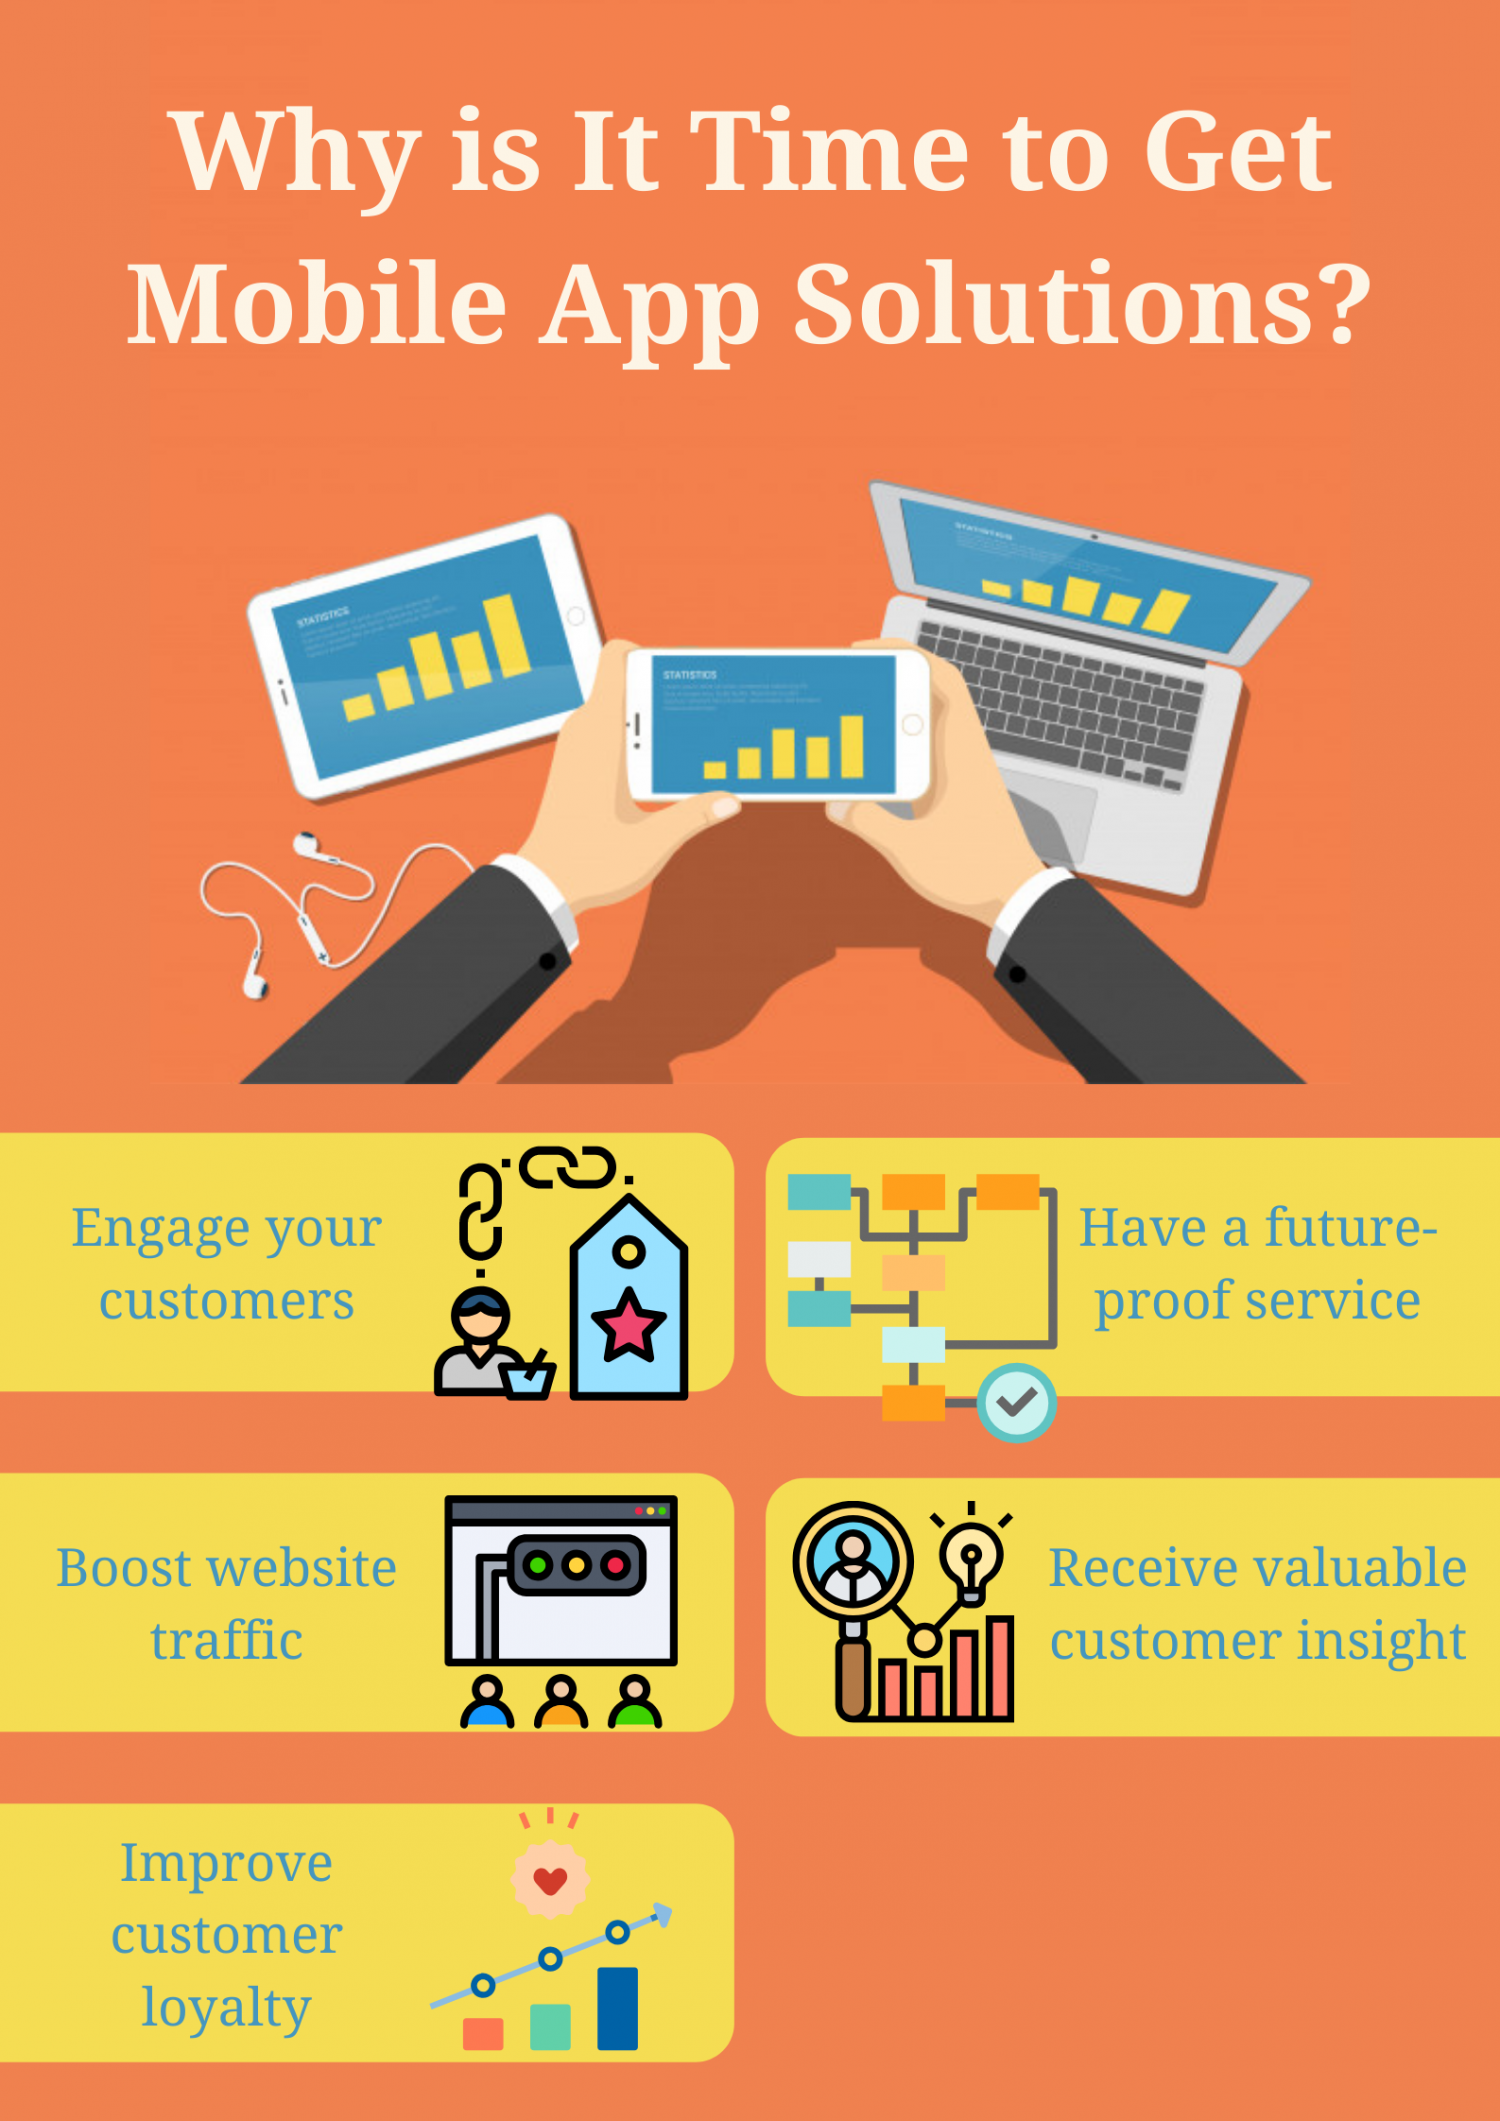 Why is It Time to Get Mobile App Solutions? Infographic